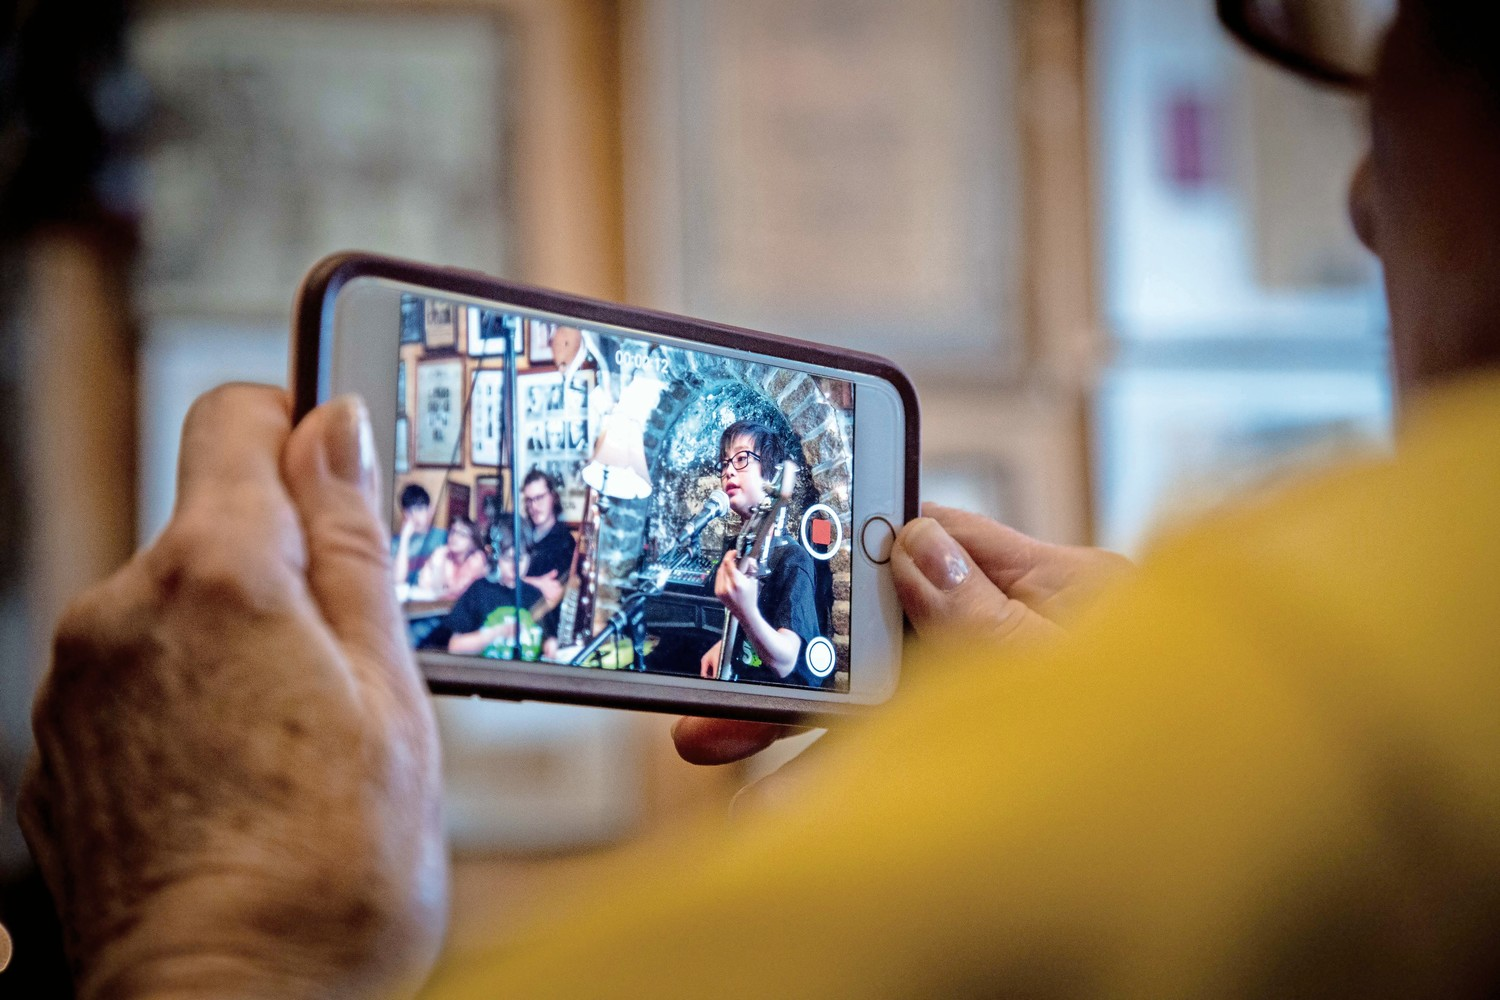 A fan of The Great Oaks takes a video of the band playing their set at An Beal Bocht Cafe.